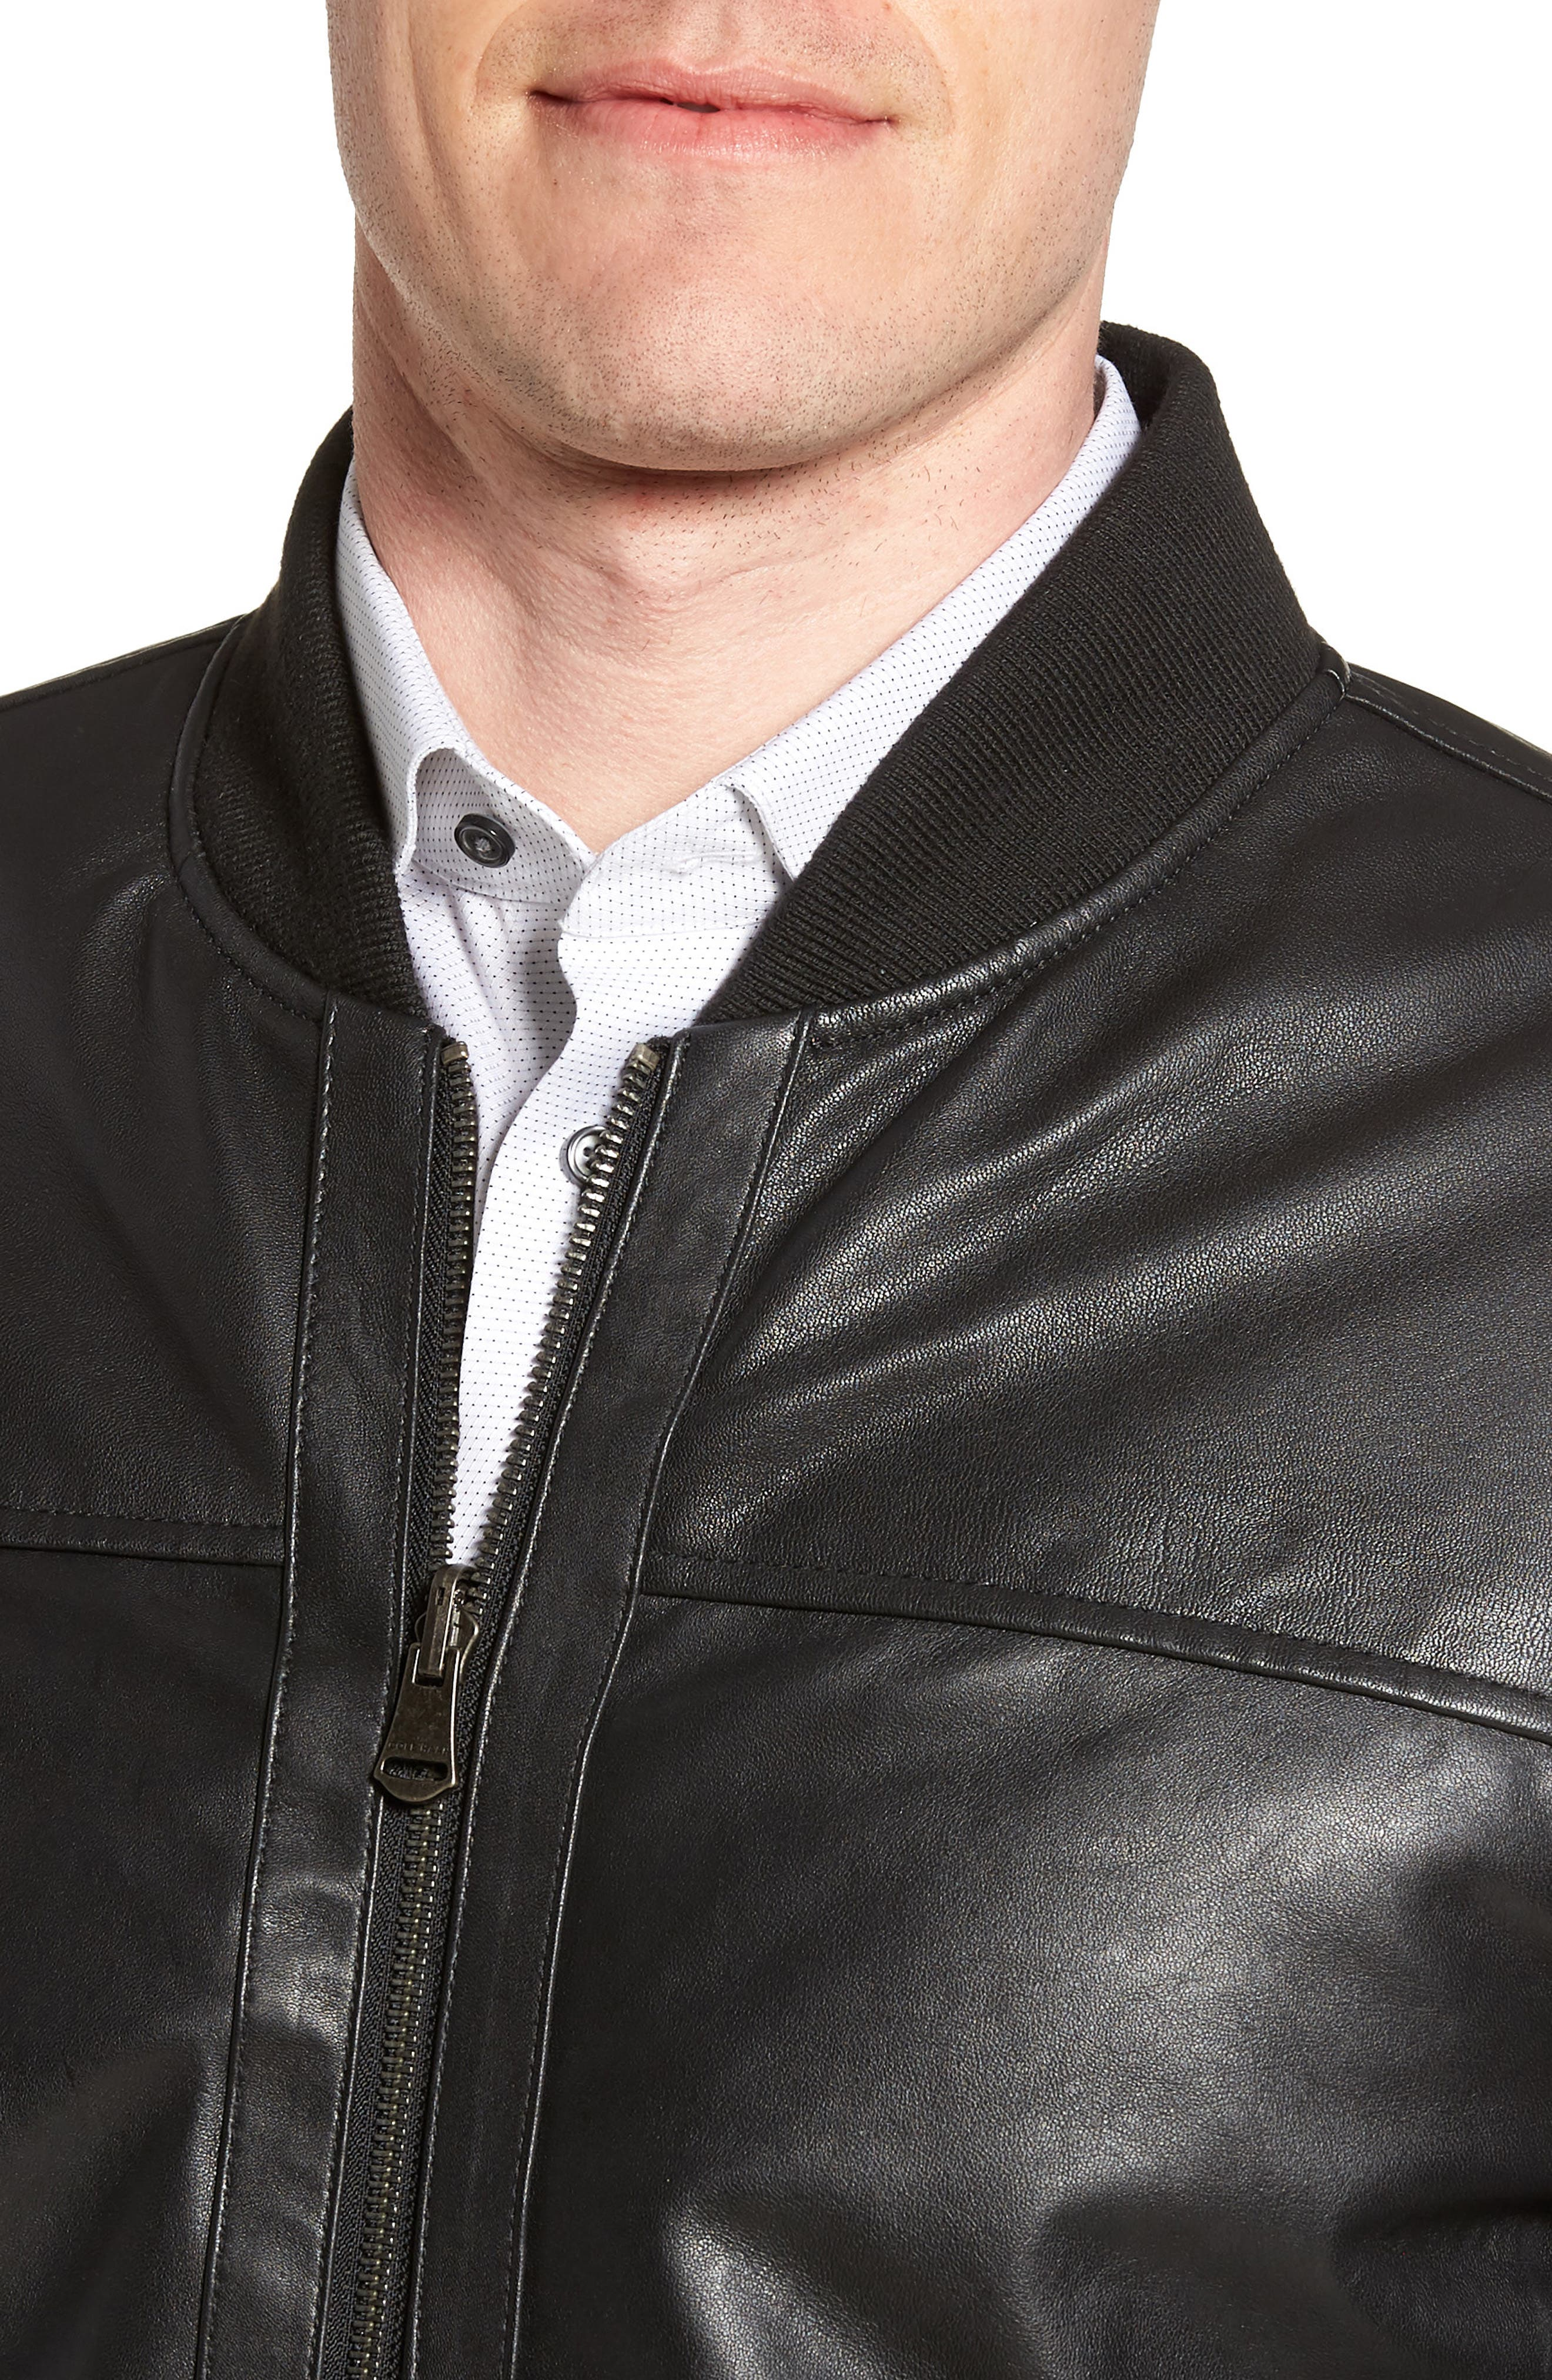 Reversible Leather Jacket,                             Alternate thumbnail 5, color,                             014